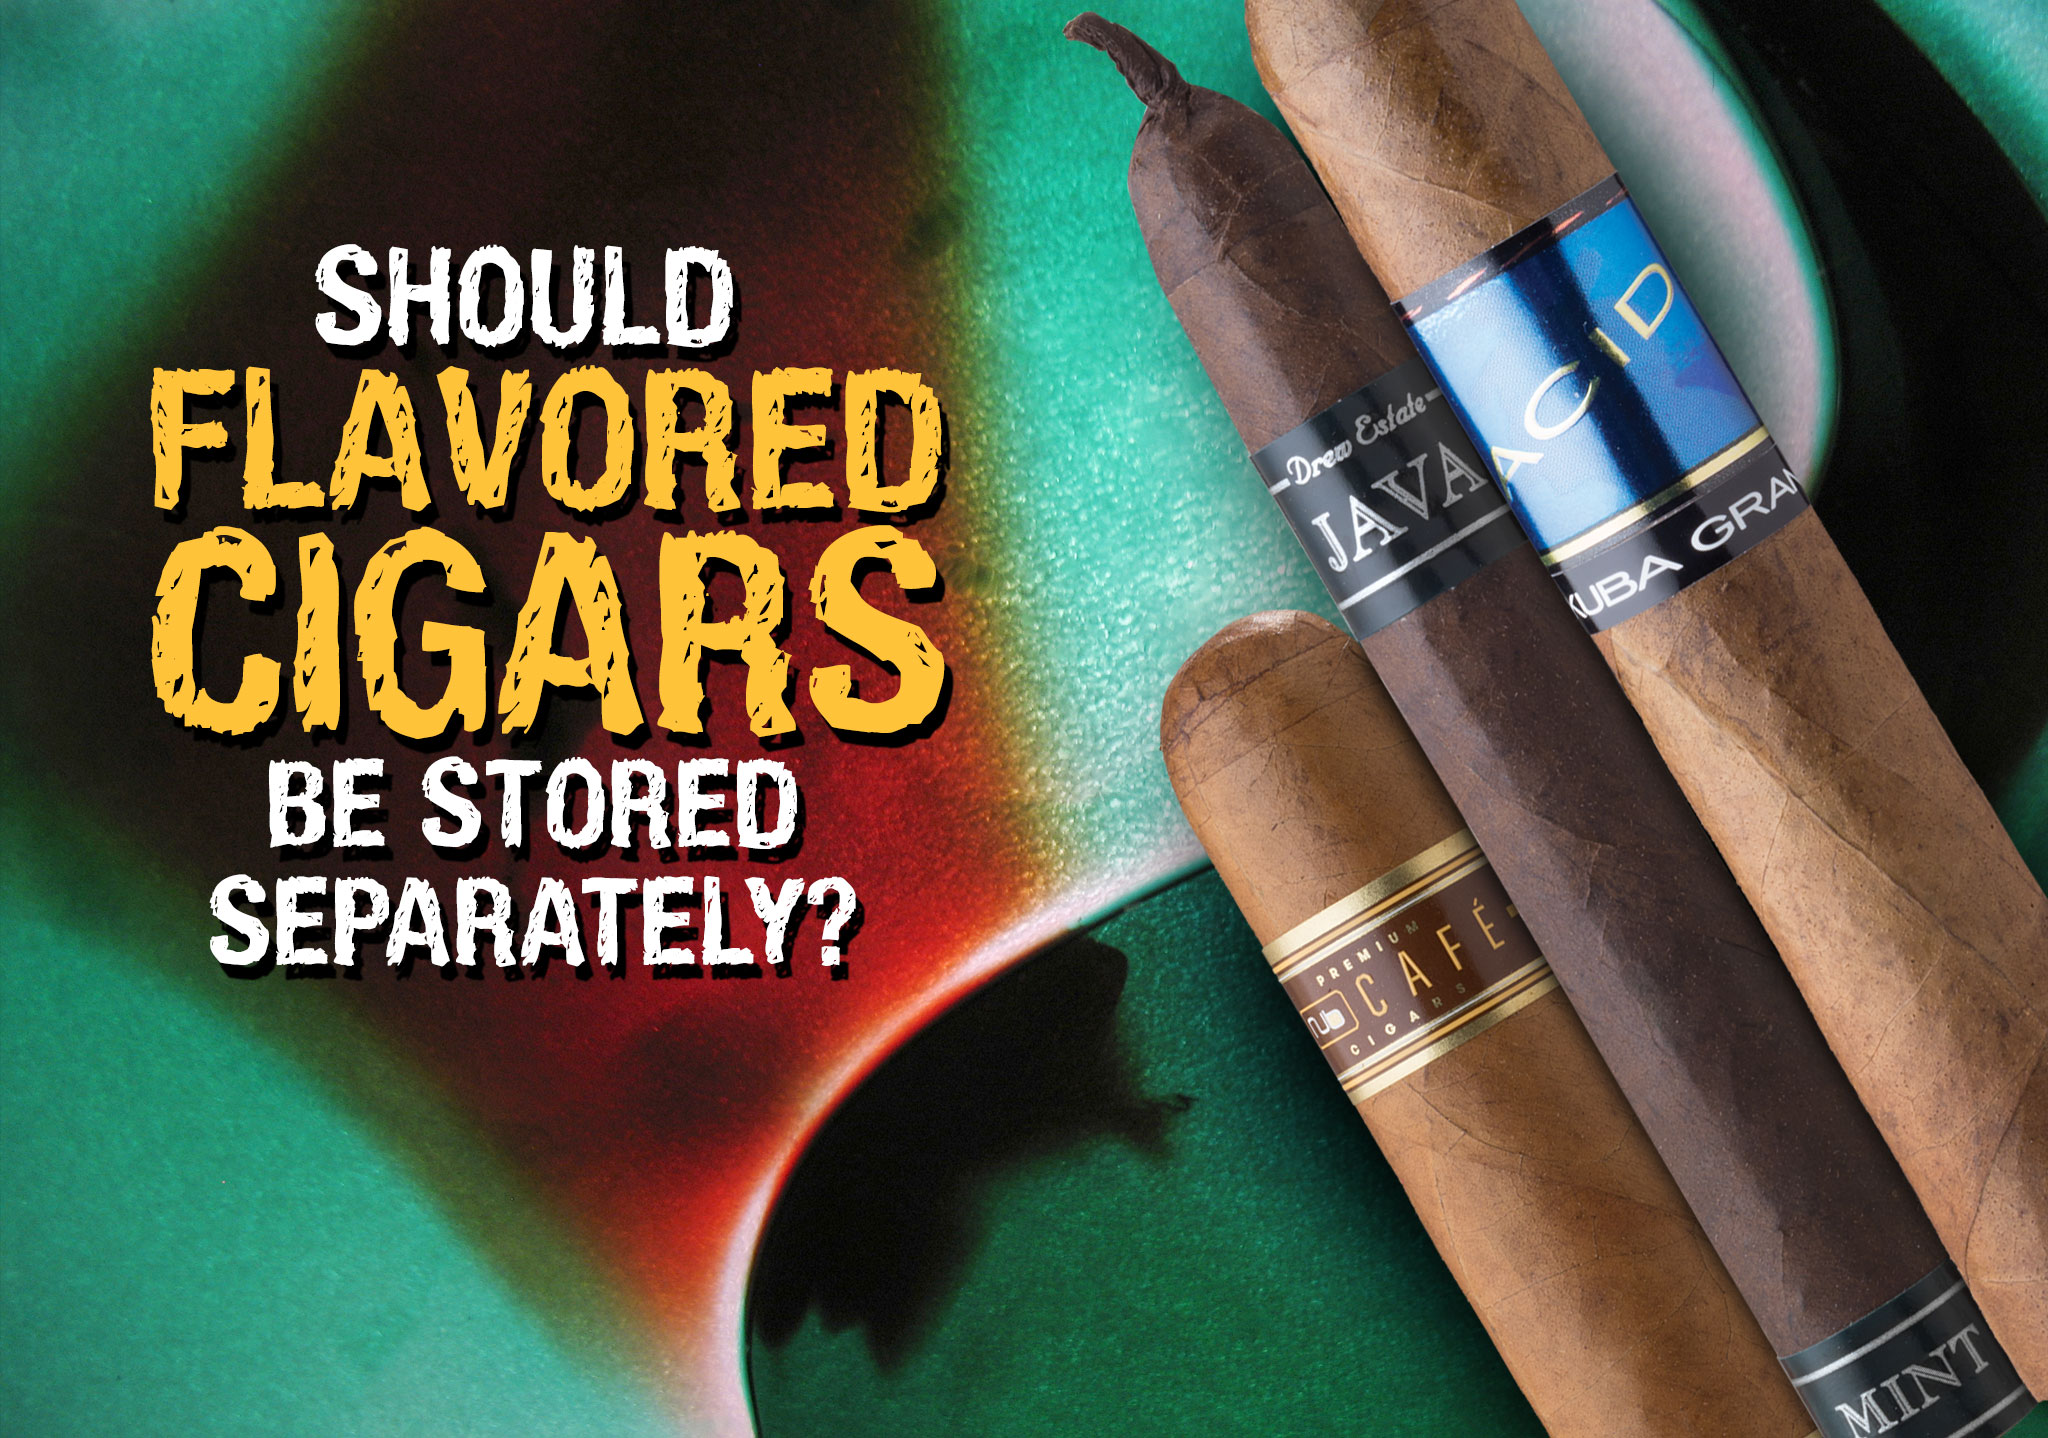 Should flavored cigars be stored separately